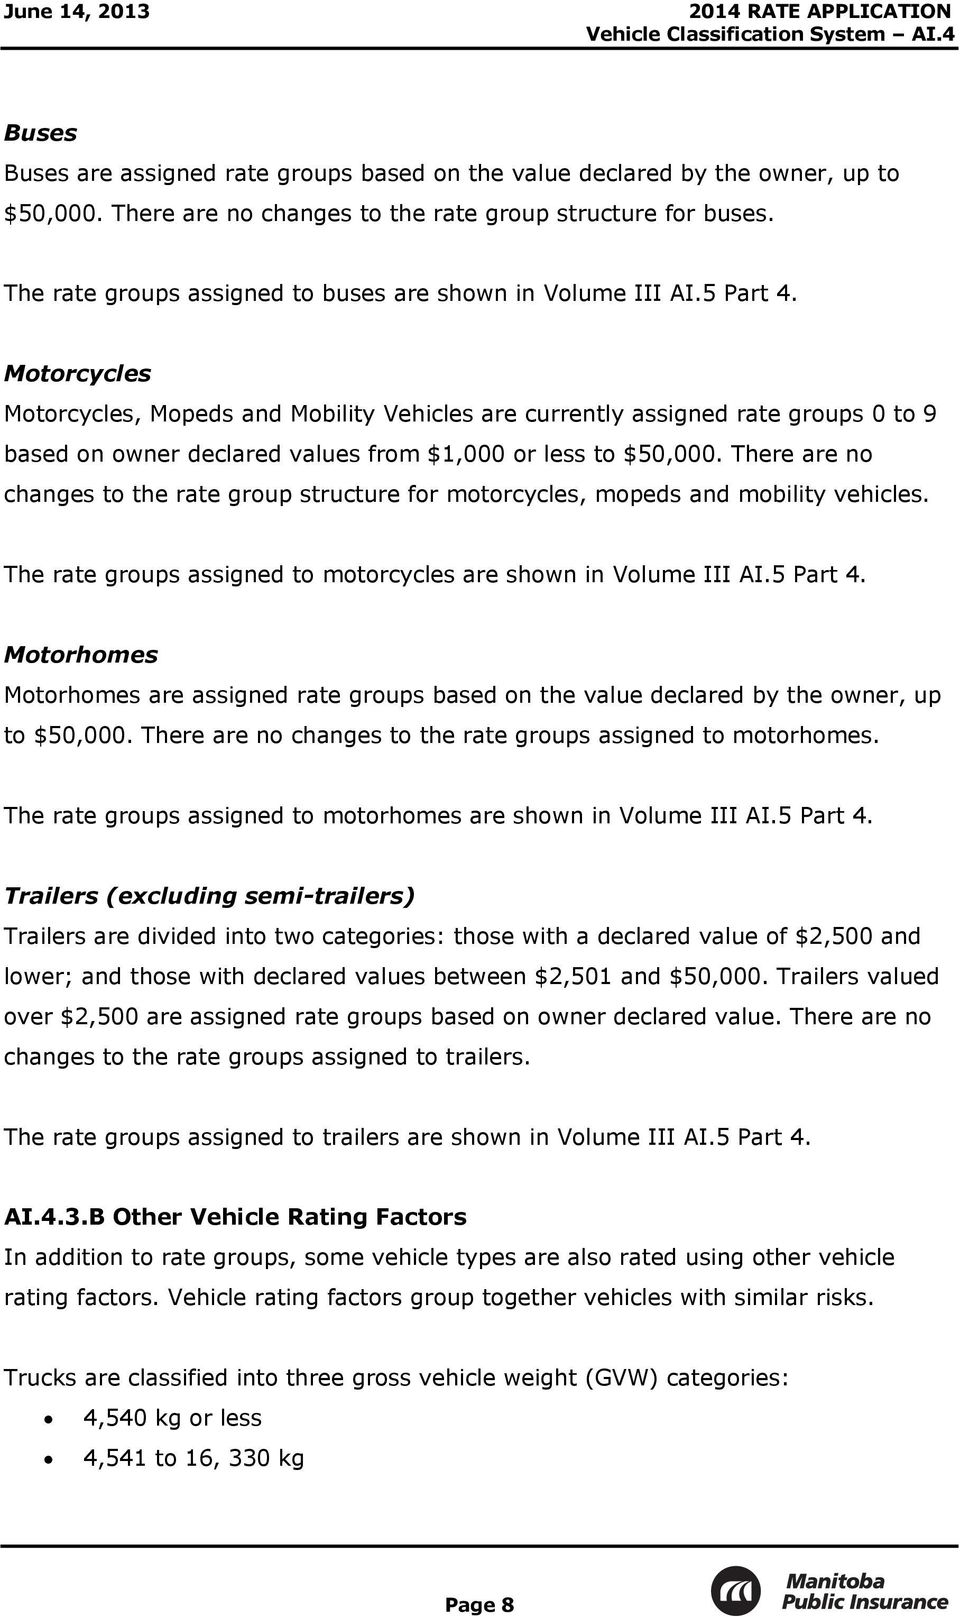 Motorcycles Motorcycles, Mopeds and Mobility Vehicles are currently assigned rate groups 0 to 9 based on owner declared values from $1,000 or less to $50,000.